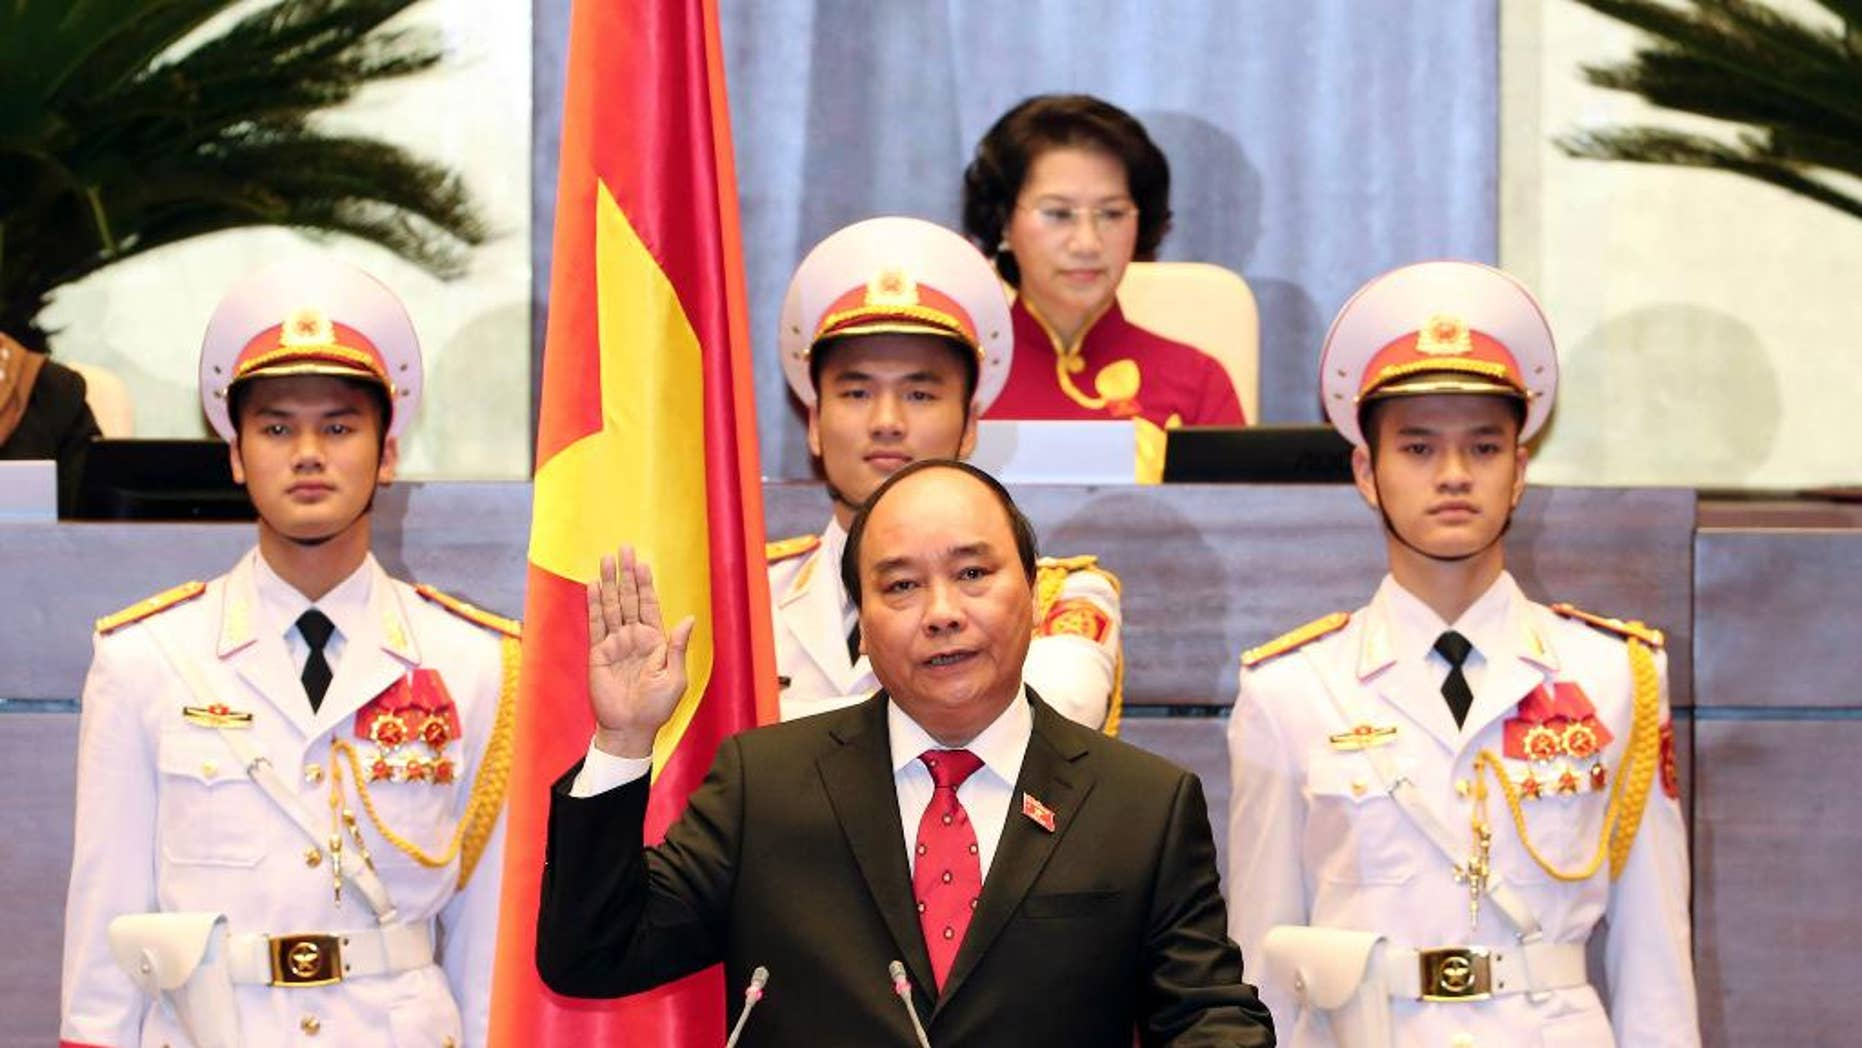 Nguyen Xuan Phuc, center, takes oath after being elected as prime minister in Hanoi, Vietnam Thursday April, 7, 2016. Vietnam's National Assembly on Thursday elected Phuc as prime minister, and he takes office at a time of soaring public debt, a serious budget deficit and China's growing assertiveness in the South China Sea. (Thong Nhat/Vietnam News Agency via AP)